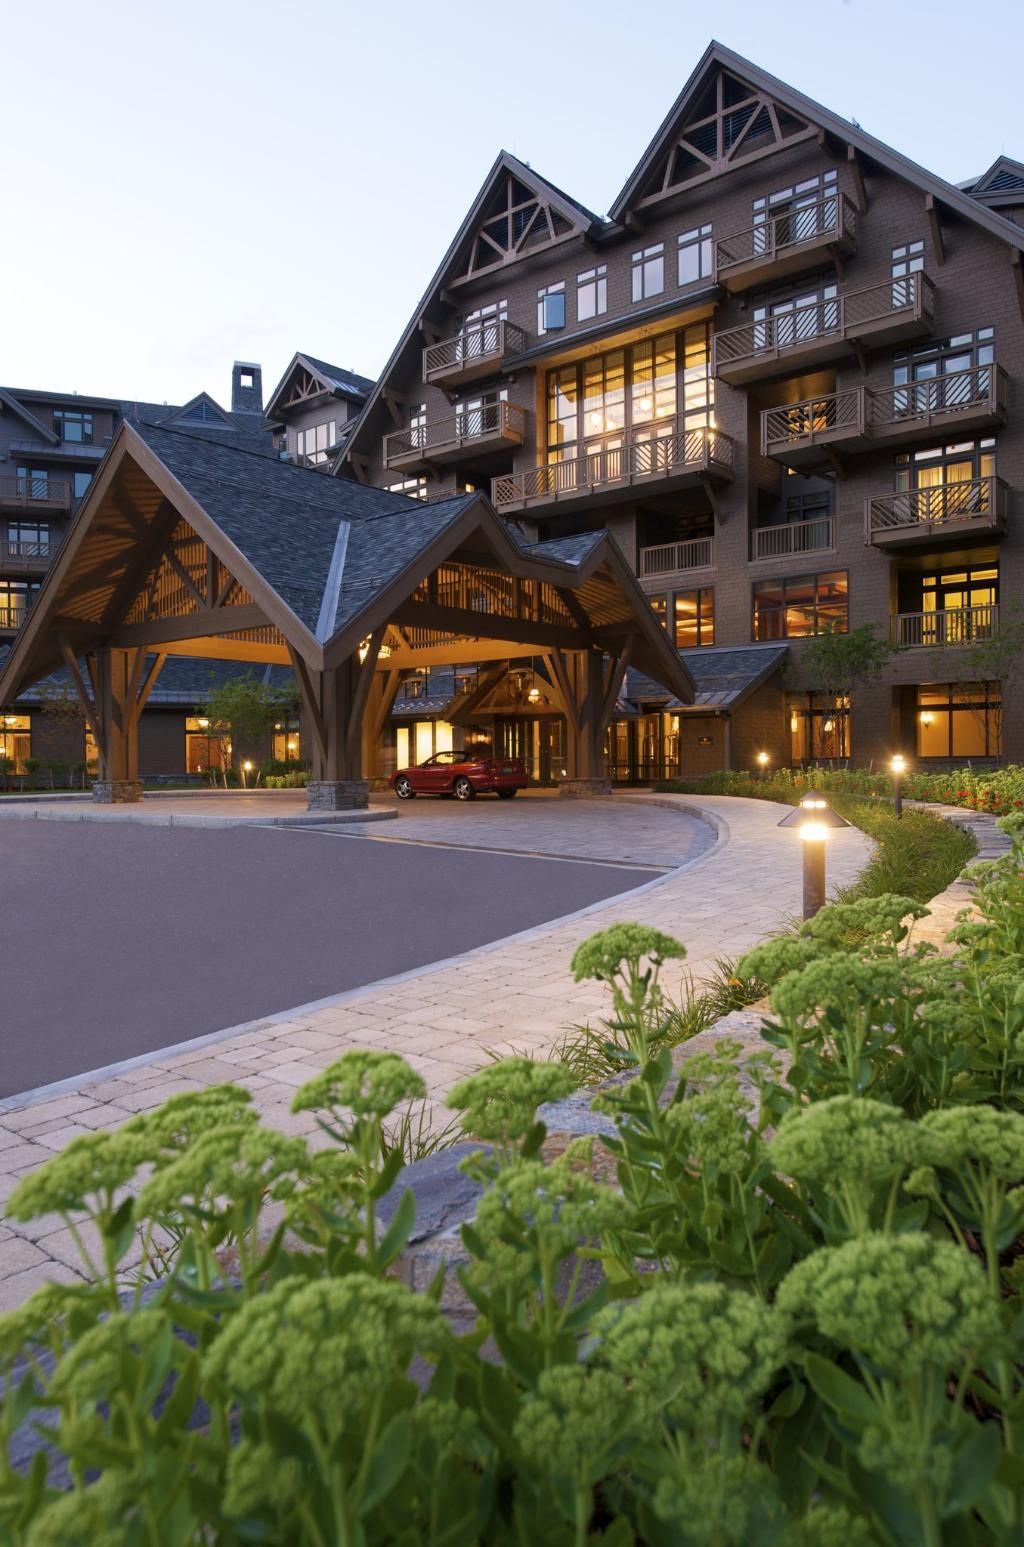 Stowe Mountain Lodge Vermont Vacation Stowe Vermont Mountain Lodge